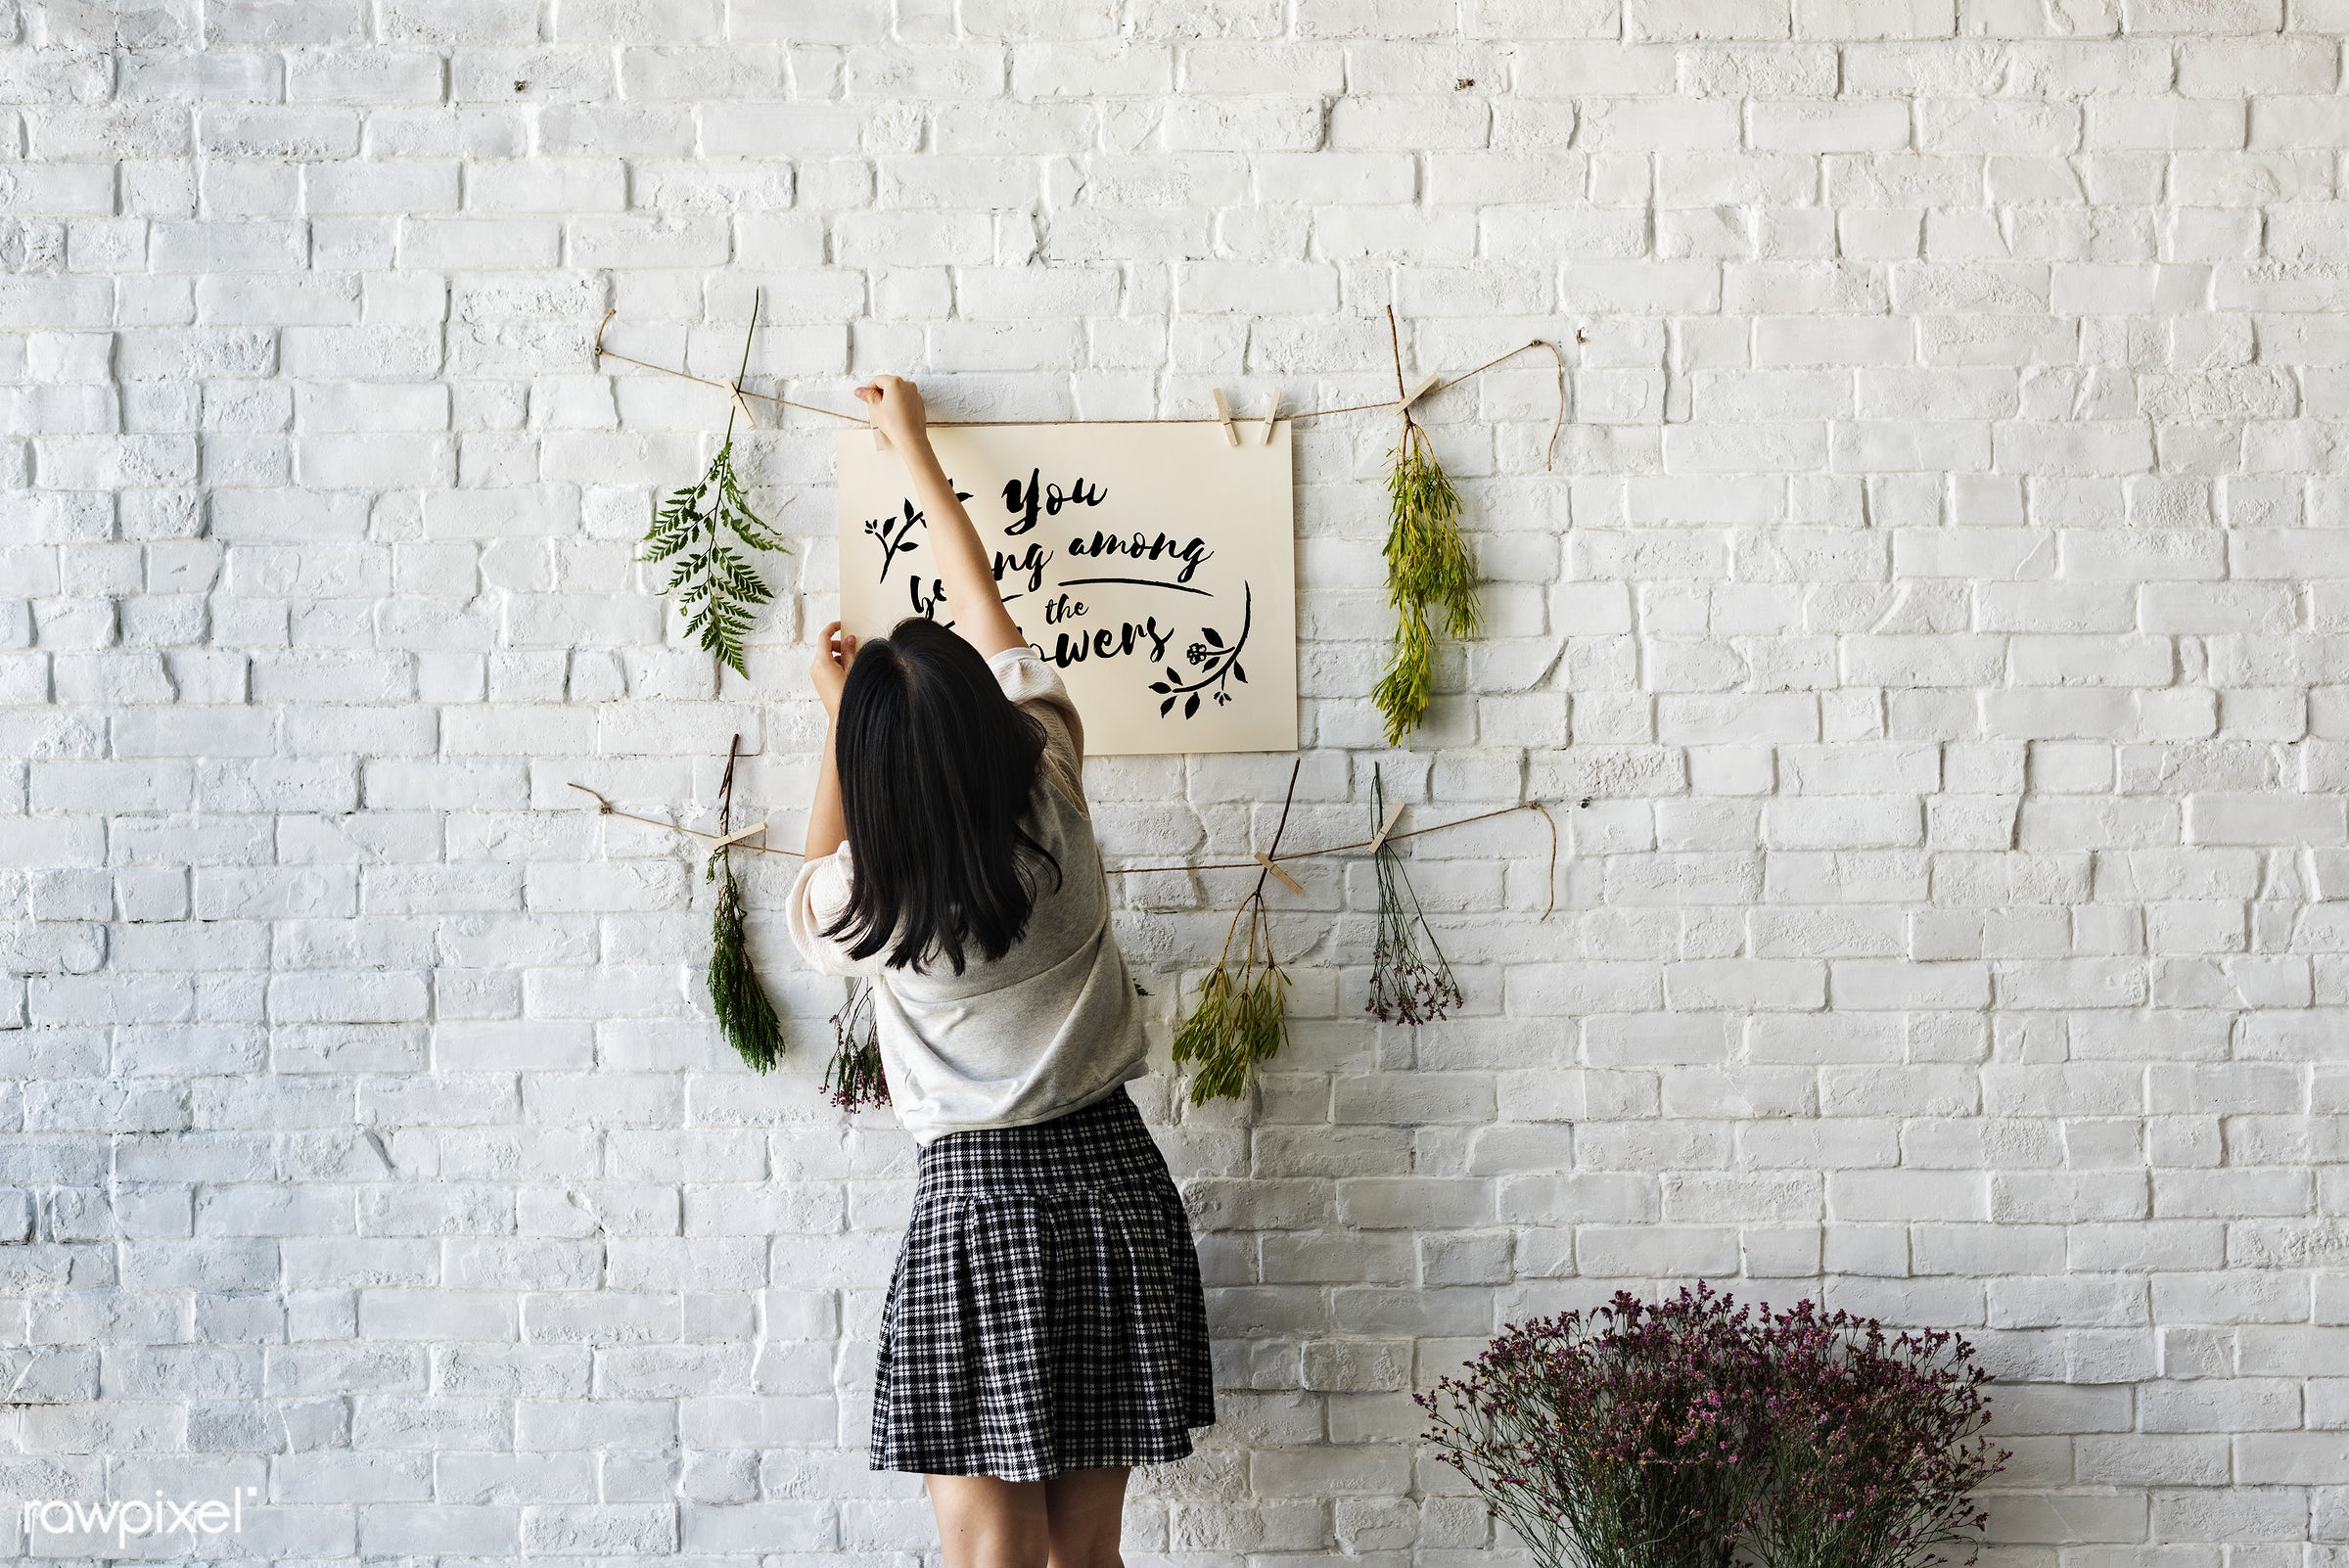 A woman decorating the wall with flowers - lifestyle, florist, girl, decorating, floral, woman, relax, smell, present, rear...